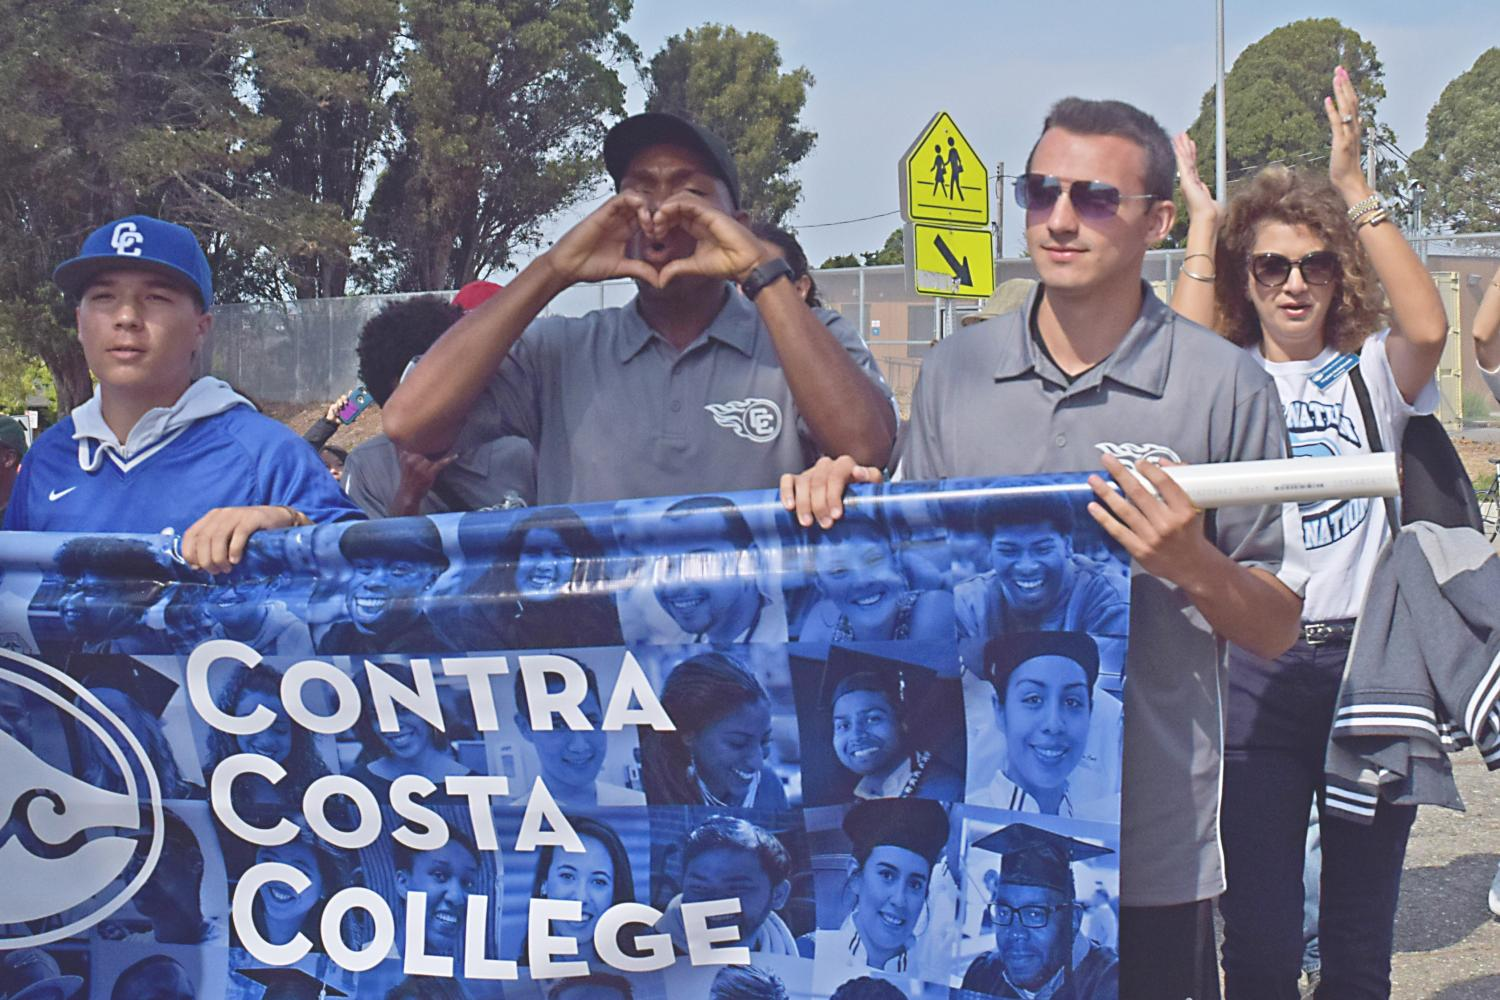 A Contra Costa College student chants while marching during the El Cerrito Centennial parade in El Cerrito on Sept. 16.